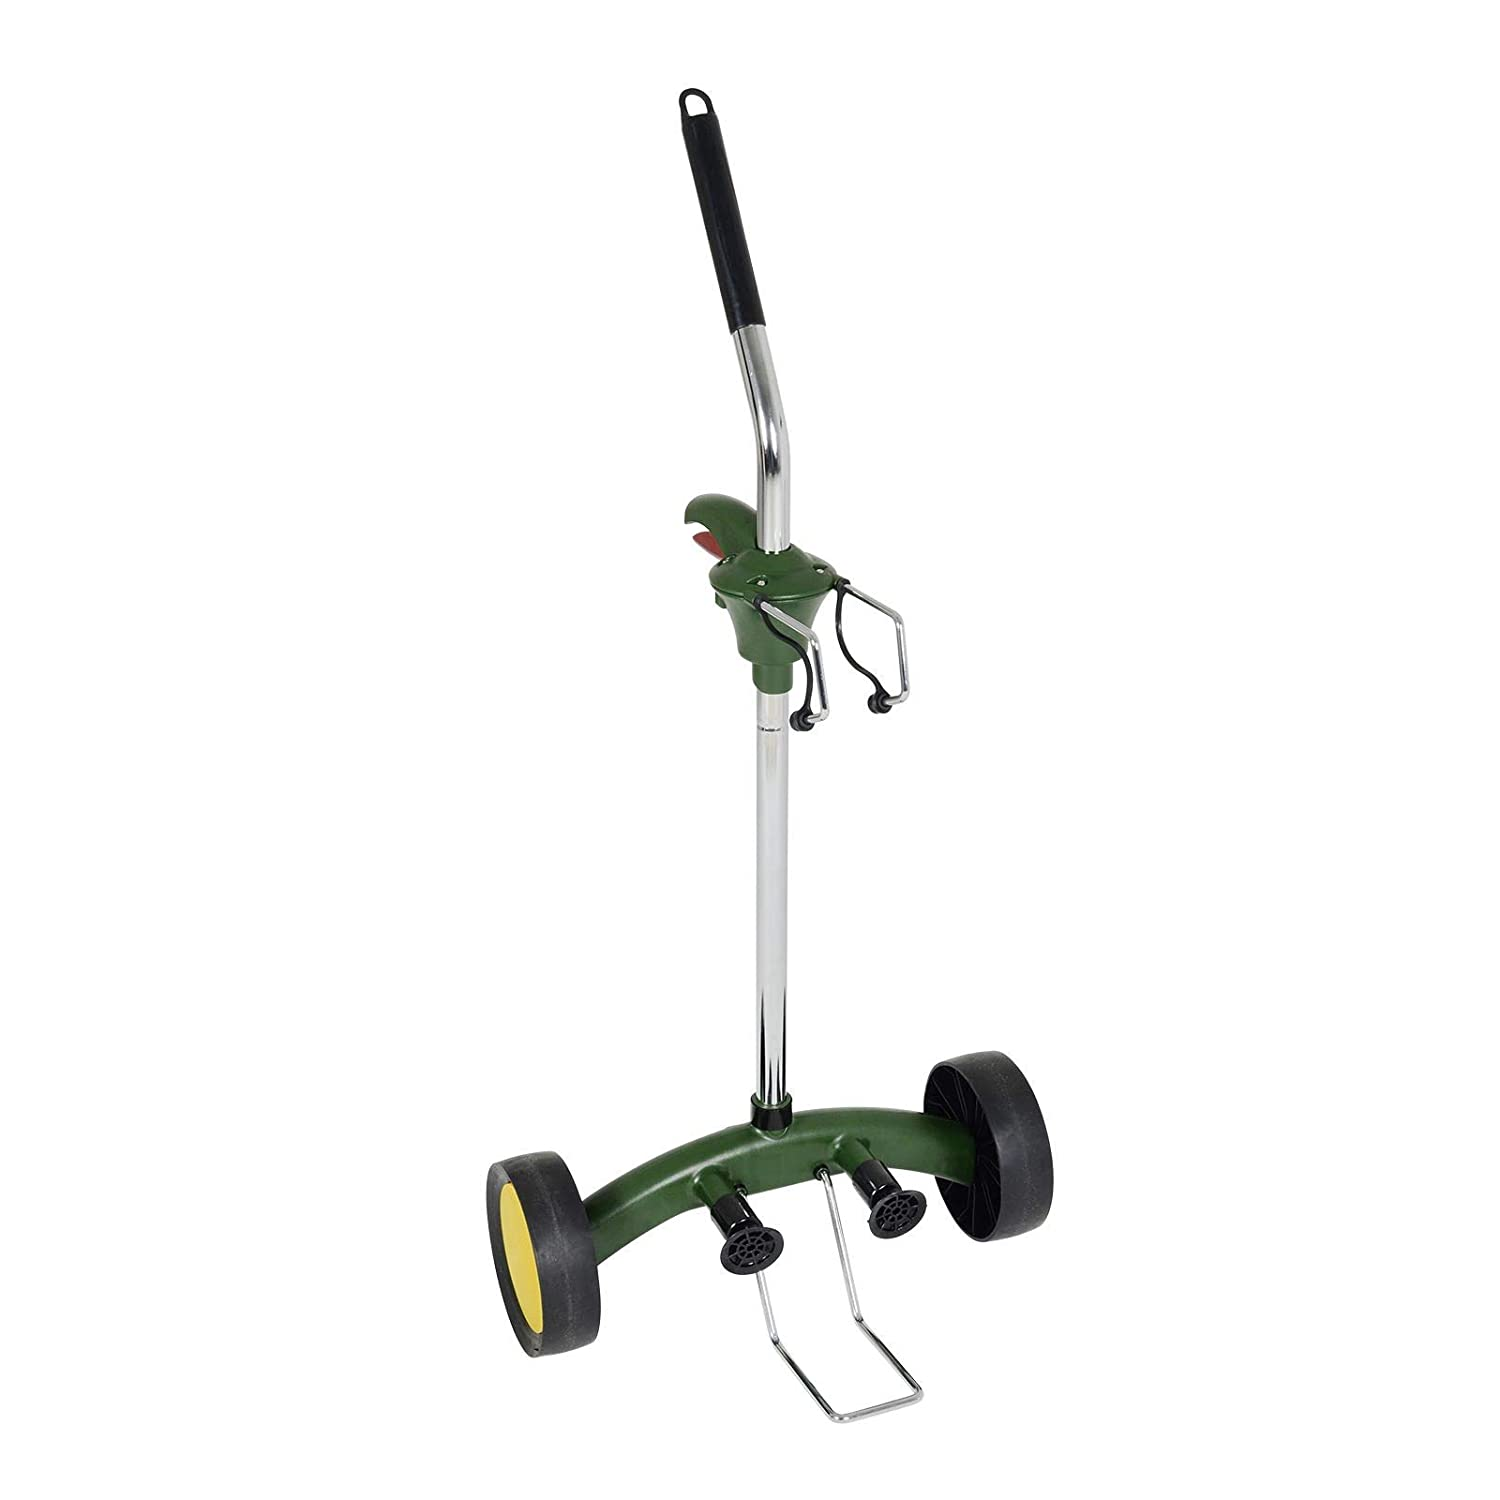 Azuma Plant Pot Mover Trolley With Wheels Outdoor Gardening Garden Home DIY Tool Grabber Arms Steel Max Weight 75kgs 118cm XS-Stock.com Ltd